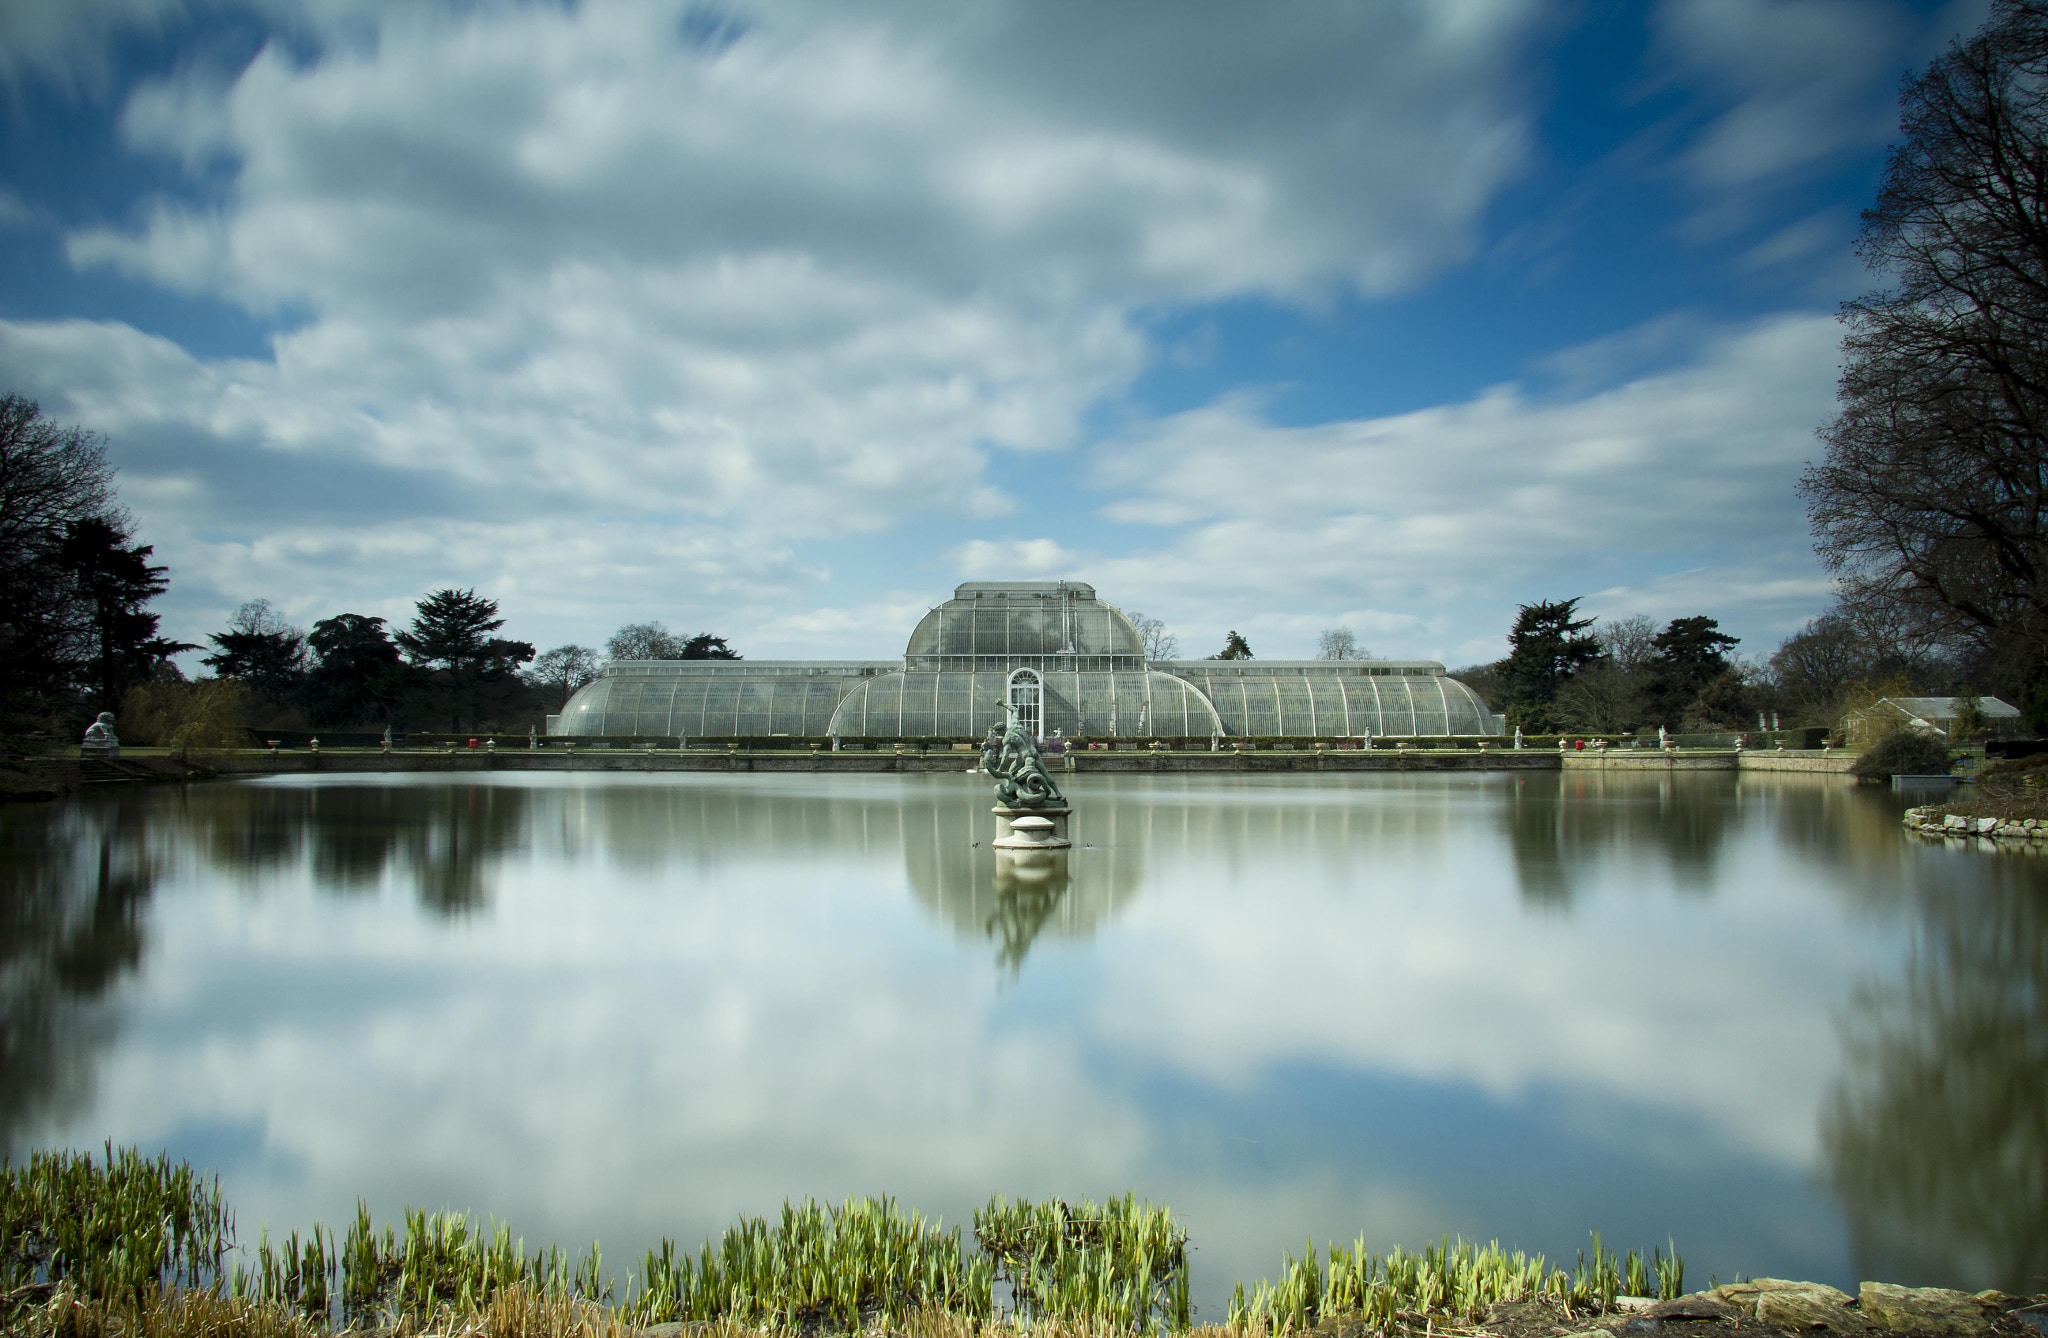 Photograph Kew Gardens by Gail Sparks on 500px